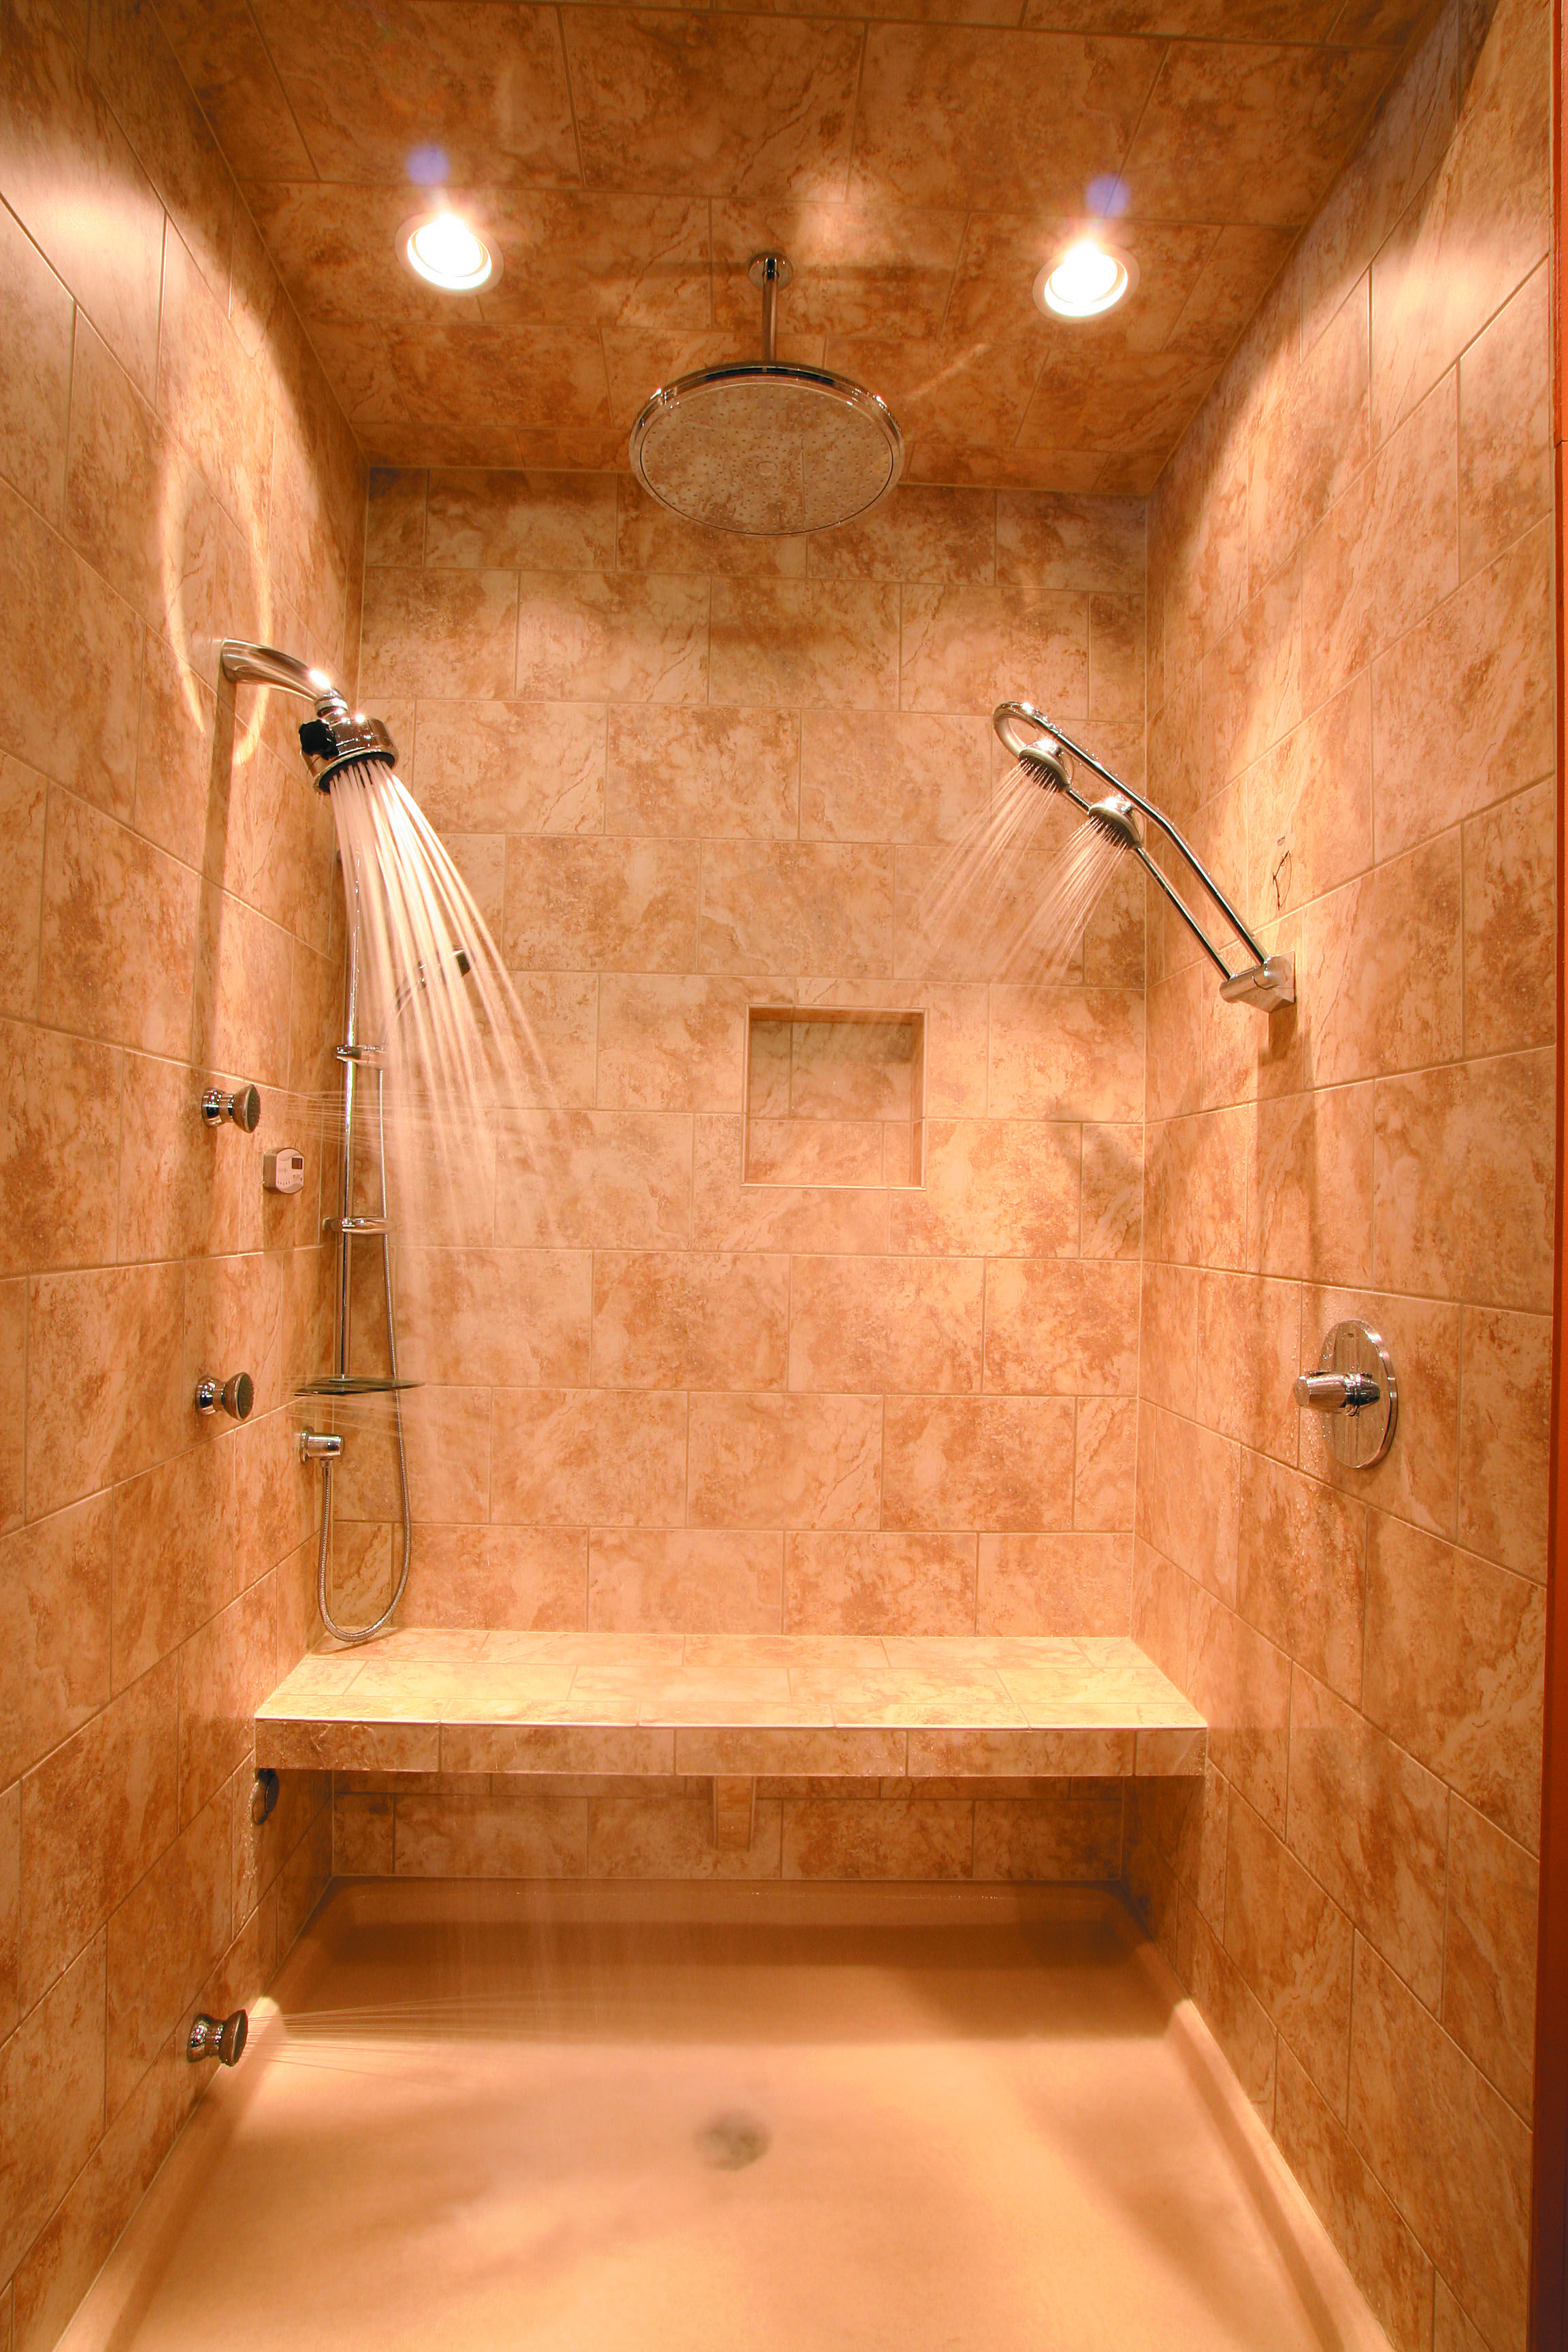 Shower With Heated Floors Yes To Heated Floors Slab Stone Instead Of Tile Grout Real Sized Bench Add Steam Shower And L Home Dream Shower Onyx Shower